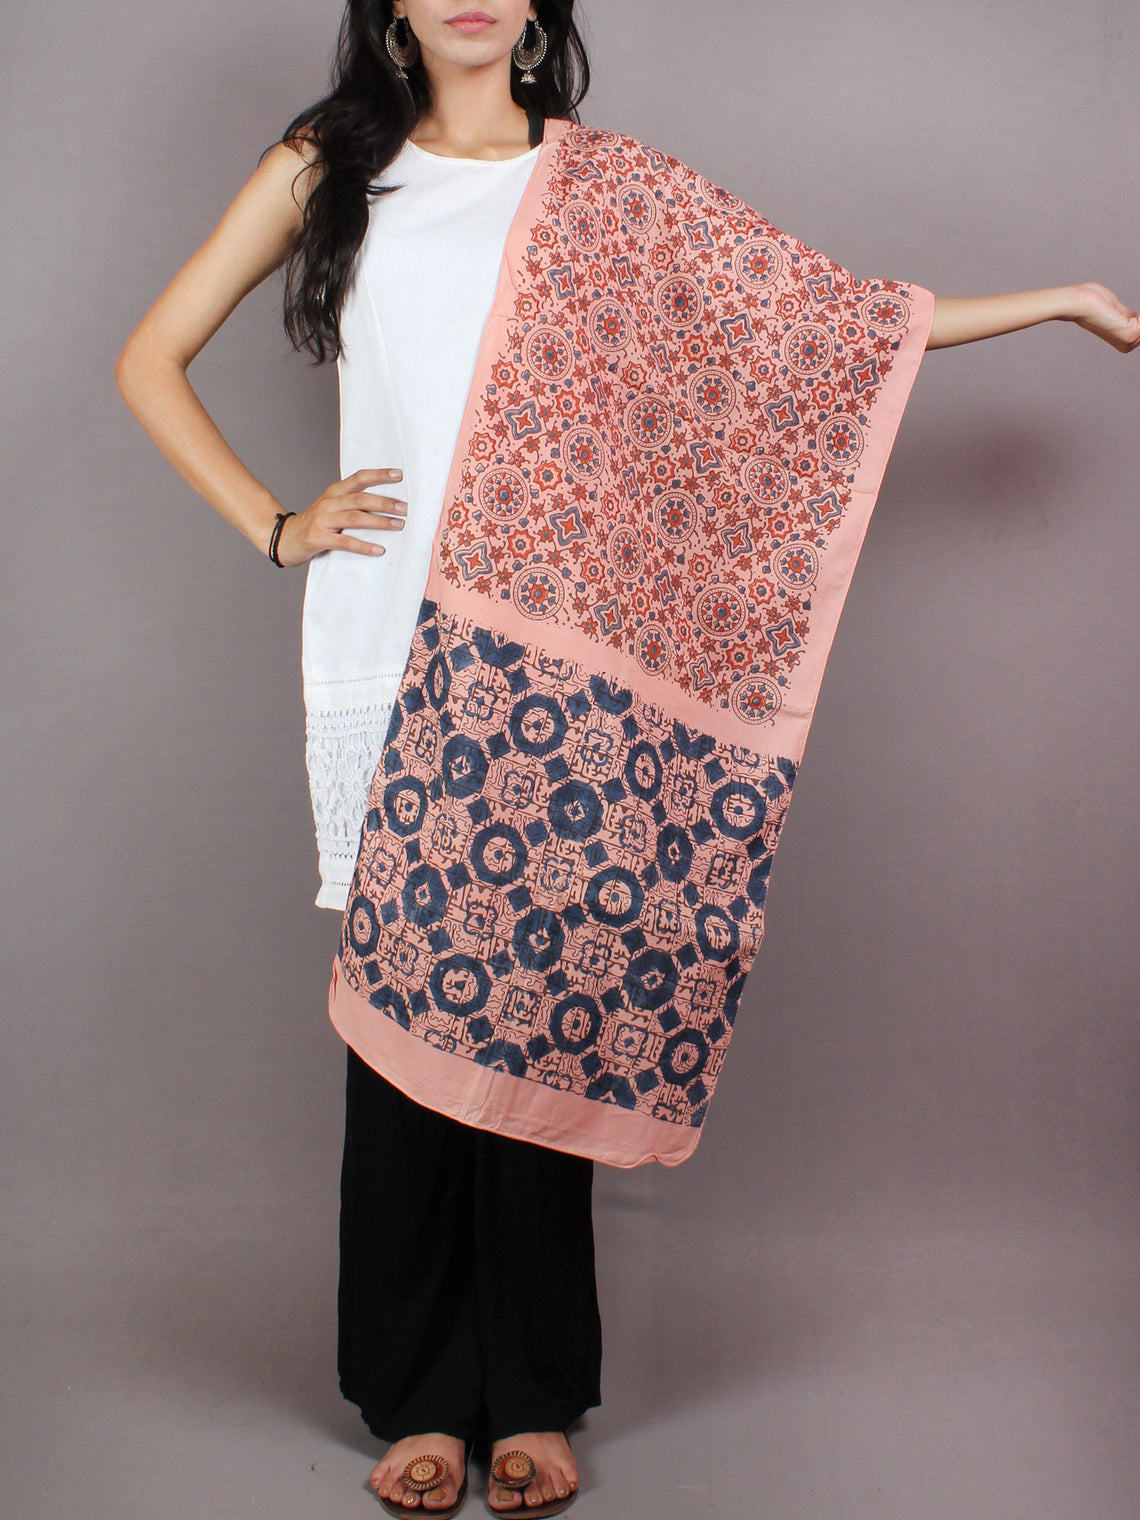 Salmon Pink Red Blue Mughal Nakashi Ajrakh Hand Block Printed Cotton Stole - S6317059